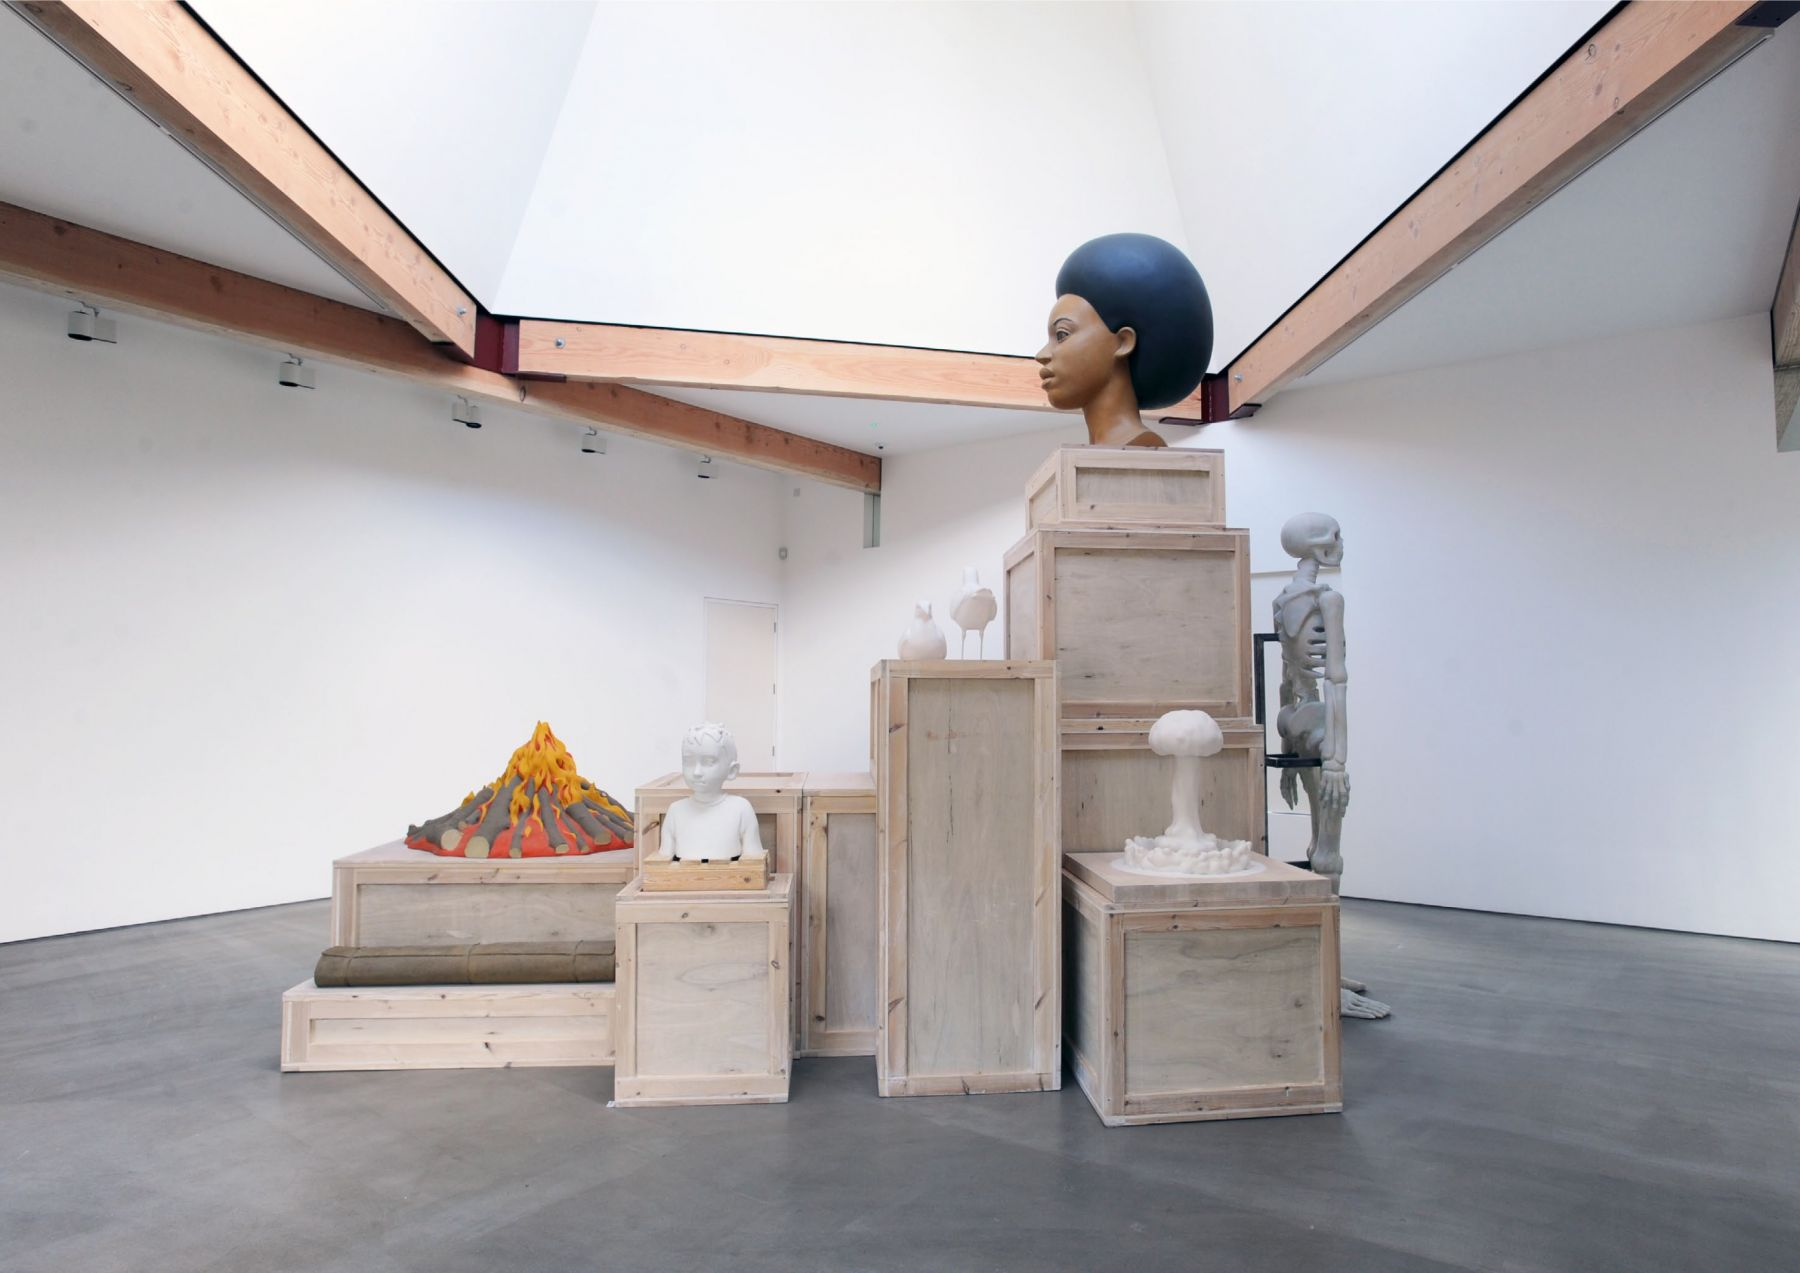 KENNY HUNTER Kontrapunkt wood, resin, paint, steel, 149.6 x 189 x 133 inches installation view